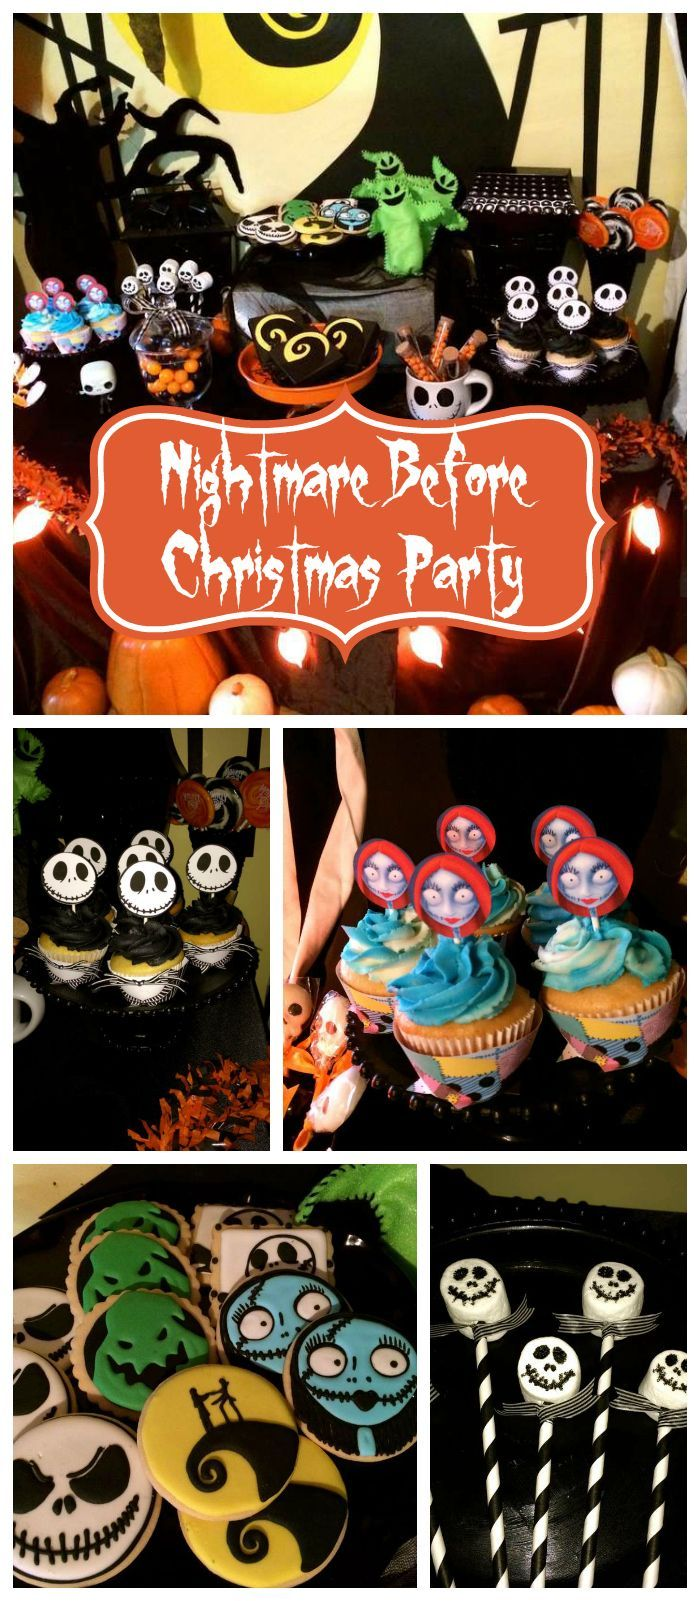 A Nightmare Before Christmas party with marshmallow pops and Jack and Sally inspired cupcakes! See more party planning ideas at CatchMyParty.com!